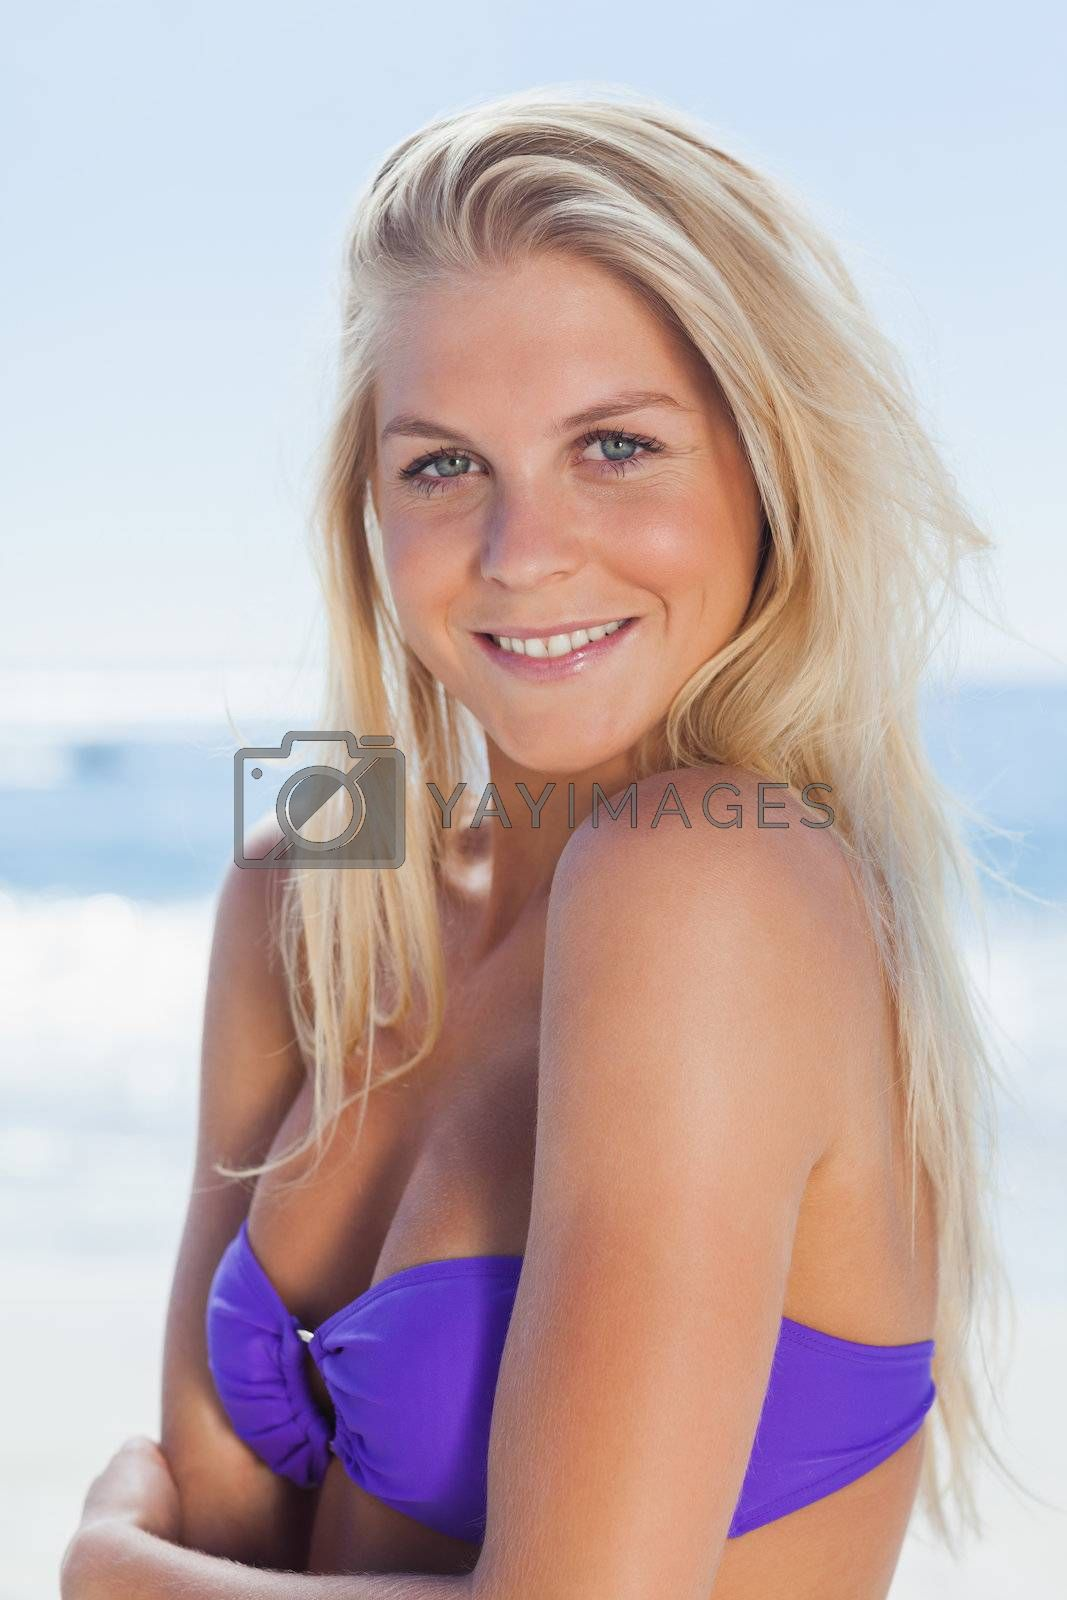 Attractive woman smiling at camera by Wavebreakmedia